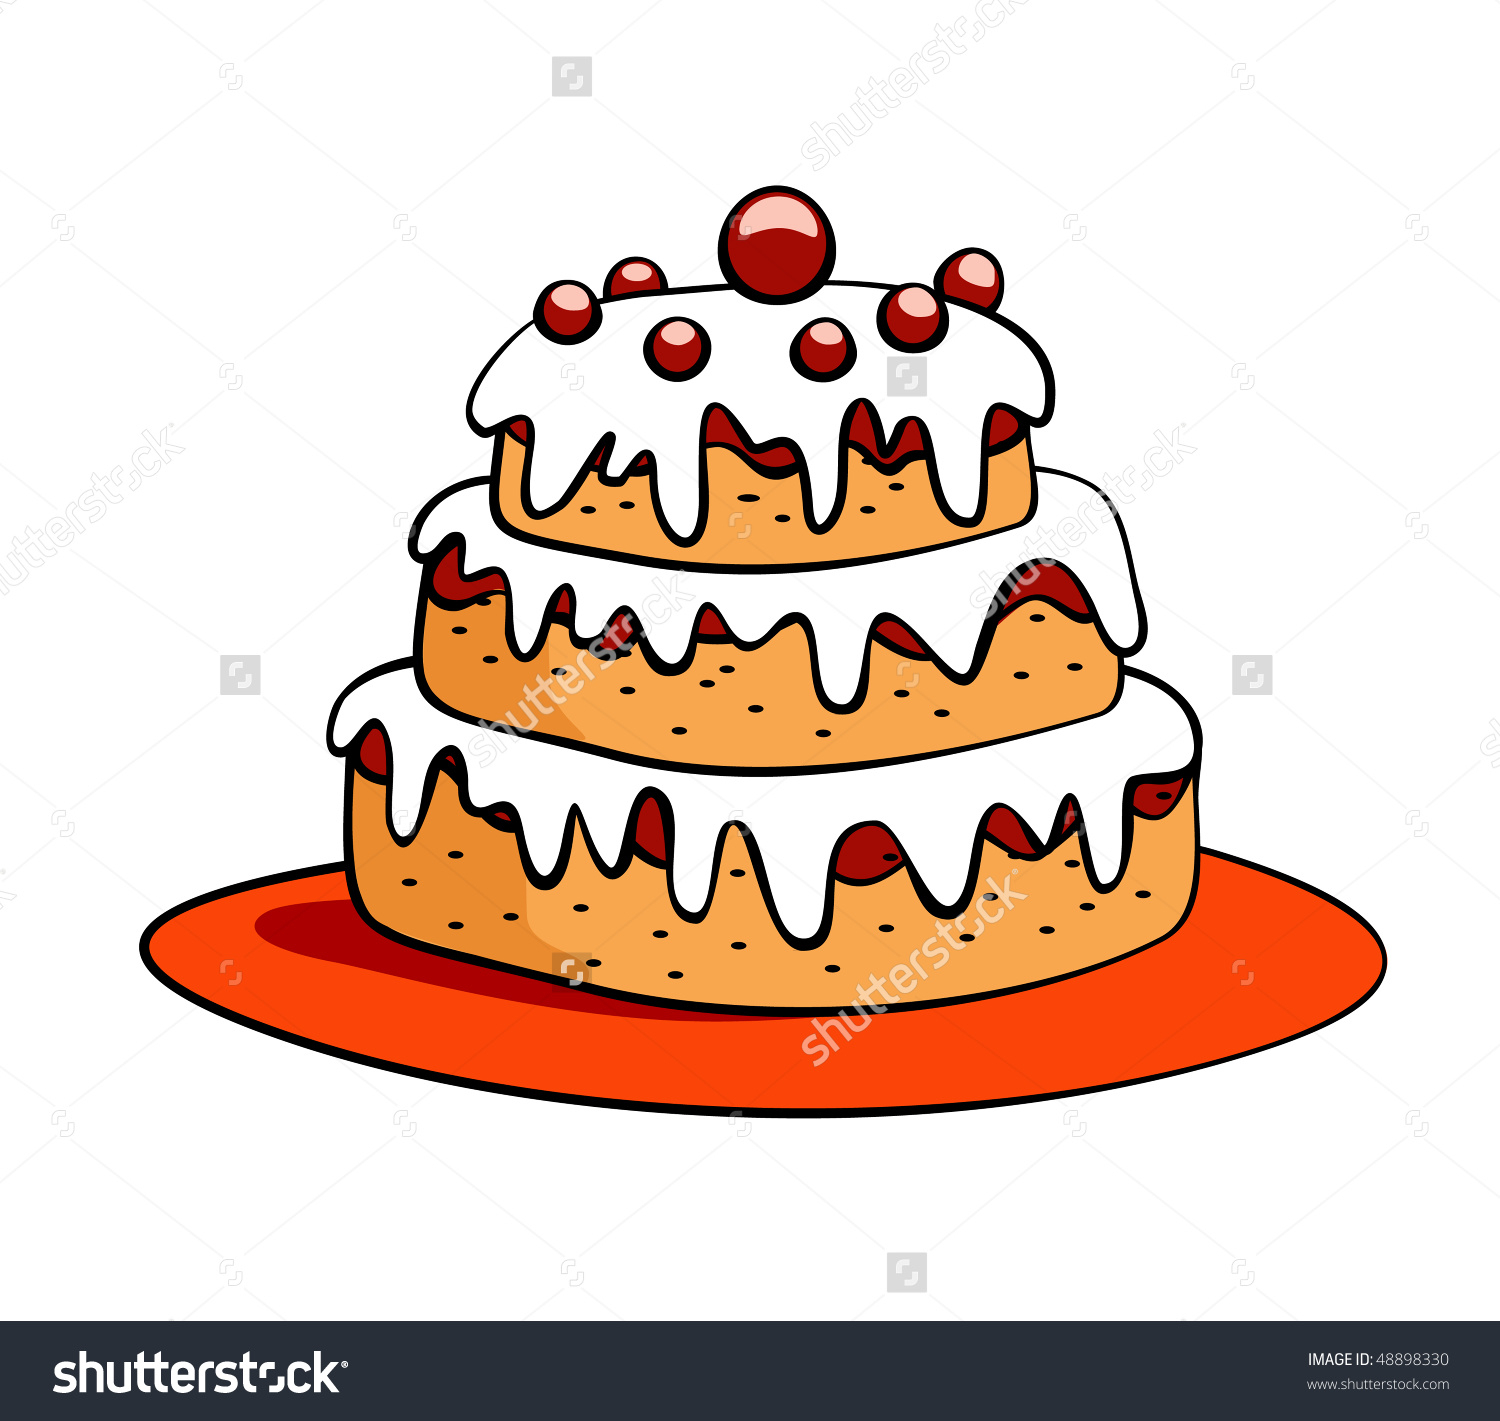 birthday cake drawing cartoon ; birthday-cake-drawing-cartoon-54